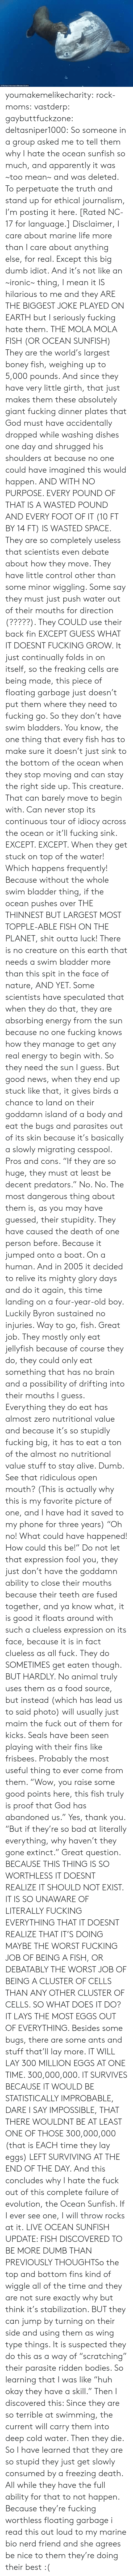 "Is My Favorite: ORihad Herrma M  S youmakemelikecharity:  rock-moms:  vastderp:  gaybuttfuckzone:  deltasniper1000:  So someone in a group asked me to tell them why I hate the ocean sunfish so much, and apparently it was ~too mean~ and was deleted. To perpetuate the truth and stand up for ethical journalism, I'm posting it here. [Rated NC-17 for language.]  Disclaimer, I care about marine life more than I care about anything else, for real. Except this big dumb idiot. And it's not like an ~ironic~ thing, I mean it IS hilarious to me and they ARE THE BIGGEST JOKE PLAYED ON EARTH but I seriously fucking hate them.  THE MOLA MOLA FISH (OR OCEAN SUNFISH)  They are the world's largest boney fish, weighing up to 5,000 pounds. And since they have very little girth, that just makes them these absolutely giant fucking dinner plates that God must have accidentally dropped while washing dishes one day and shrugged his shoulders at because no one could have imagined this would happen. AND WITH NO PURPOSE. EVERY POUND OF THAT IS A WASTED POUND AND EVERY FOOT OF IT (10 FT BY 14 FT) IS WASTED SPACE.  They are so completely useless that scientists even debate about how they move. They have little control other than some minor wiggling. Some say they must just push water out of their mouths for direction (?????). They COULD use their back fin EXCEPT GUESS WHAT IT DOESNT FUCKING GROW. It just continually folds in on itself, so the freaking cells are being made, this piece of floating garbage just doesn't put them where they need to fucking go.   So they don't have swim bladders. You know, the one thing that every fish has to make sure it doesn't just sink to the bottom of the ocean when they stop moving and can stay the right side up. This creature. That can barely move to begin with. Can never stop its continuous tour of idiocy across the ocean or it'll fucking sink. EXCEPT. EXCEPT. When they get stuck on top of the water! Which happens frequently! Because without the whole swim bladder thing, if the ocean pushes over THE THINNEST BUT LARGEST MOST TOPPLE-ABLE FISH ON THE PLANET, shit outta luck! There is no creature on this earth that needs a swim bladder more than this spit in the face of nature, AND YET. Some scientists have speculated that when they do that, they are absorbing energy from the sun because no one fucking knows how they manage to get any real energy to begin with. So they need the sun I guess. But good news, when they end up stuck like that, it gives birds a chance to land on their goddamn island of a body and eat the bugs and parasites out of its skin because it's basically a slowly migrating cesspool. Pros and cons.   ""If they are so huge, they must at least be decent predators."" No. No. The most dangerous thing about them is, as you may have guessed, their stupidity. They have caused the death of one person before. Because it jumped onto a boat. On a human. And in 2005 it decided to relive its mighty glory days and do it again, this time landing on a four-year-old boy. Luckily Byron sustained no injuries. Way to go, fish. Great job.  They mostly only eat jellyfish because of course they do, they could only eat something that has no brain and a possibility of drifting into their mouths I guess. Everything they do eat has almost zero nutritional value and because it's so stupidly fucking big, it has to eat a ton of the almost no nutritional value stuff to stay alive. Dumb. See that ridiculous open mouth? (This is actually why this is my favorite picture of one, and I have had it saved to my phone for three years) ""Oh no! What could have happened! How could this be!"" Do not let that expression fool you, they just don't have the goddamn ability to close their mouths because their teeth are fused together, and ya know what, it is good it floats around with such a clueless expression on its face, because it is in fact clueless as all fuck.  They do SOMETIMES get eaten though. BUT HARDLY. No animal truly uses them as a food source, but instead (which has lead us to said photo) will usually just maim the fuck out of them for kicks. Seals have been seen playing with their fins like frisbees. Probably the most useful thing to ever come from them.   ""Wow, you raise some good points here, this fish truly is proof that God has abandoned us."" Yes, thank you. ""But if they're so bad at literally everything, why haven't they gone extinct."" Great question.   BECAUSE THIS THING IS SO WORTHLESS IT DOESNT REALIZE IT SHOULD NOT EXIST. IT IS SO UNAWARE OF LITERALLY FUCKING EVERYTHING THAT IT DOESNT REALIZE THAT IT'S DOING MAYBE THE WORST FUCKING JOB OF BEING A FISH, OR DEBATABLY THE WORST JOB OF BEING A CLUSTER OF CELLS THAN ANY OTHER CLUSTER OF CELLS. SO WHAT DOES IT DO? IT LAYS THE MOST EGGS OUT OF EVERYTHING. Besides some bugs, there are some ants and stuff that'll lay more. IT WILL LAY 300 MILLION EGGS AT ONE TIME. 300,000,000. IT SURVIVES BECAUSE IT WOULD BE STATISTICALLY IMPROBABLE, DARE I SAY IMPOSSIBLE, THAT THERE WOULDNT BE AT LEAST ONE OF THOSE 300,000,000 (that is EACH time they lay eggs) LEFT SURVIVING AT THE END OF THE DAY.   And this concludes why I hate the fuck out of this complete failure of evolution, the Ocean Sunfish. If I ever see one, I will throw rocks at it.   LIVE OCEAN SUNFISH UPDATE: FISH DISCOVERED TO BE MORE DUMB THAN PREVIOUSLY THOUGHTSo  the top and bottom fins kind of wiggle all of the time and they are not  sure exactly why but think it's stabilization. BUT they can jump by  turning on their side and using them as  wing type things. It is suspected they do this as a way of ""scratching""  their parasite ridden bodies. So learning that I was like ""huh okay they  have a skill."" Then I discovered this: Since they  are so terrible at swimming, the current will carry them into deep cold  water. Then they die. So I have learned that they are so stupid they  just get slowly consumed by a freezing death. All while they have the  full ability for that to not happen. Because they're fucking worthless  floating garbage    i read this out loud to my marine bio nerd friend and she agrees   be nice to them they're doing their best :("